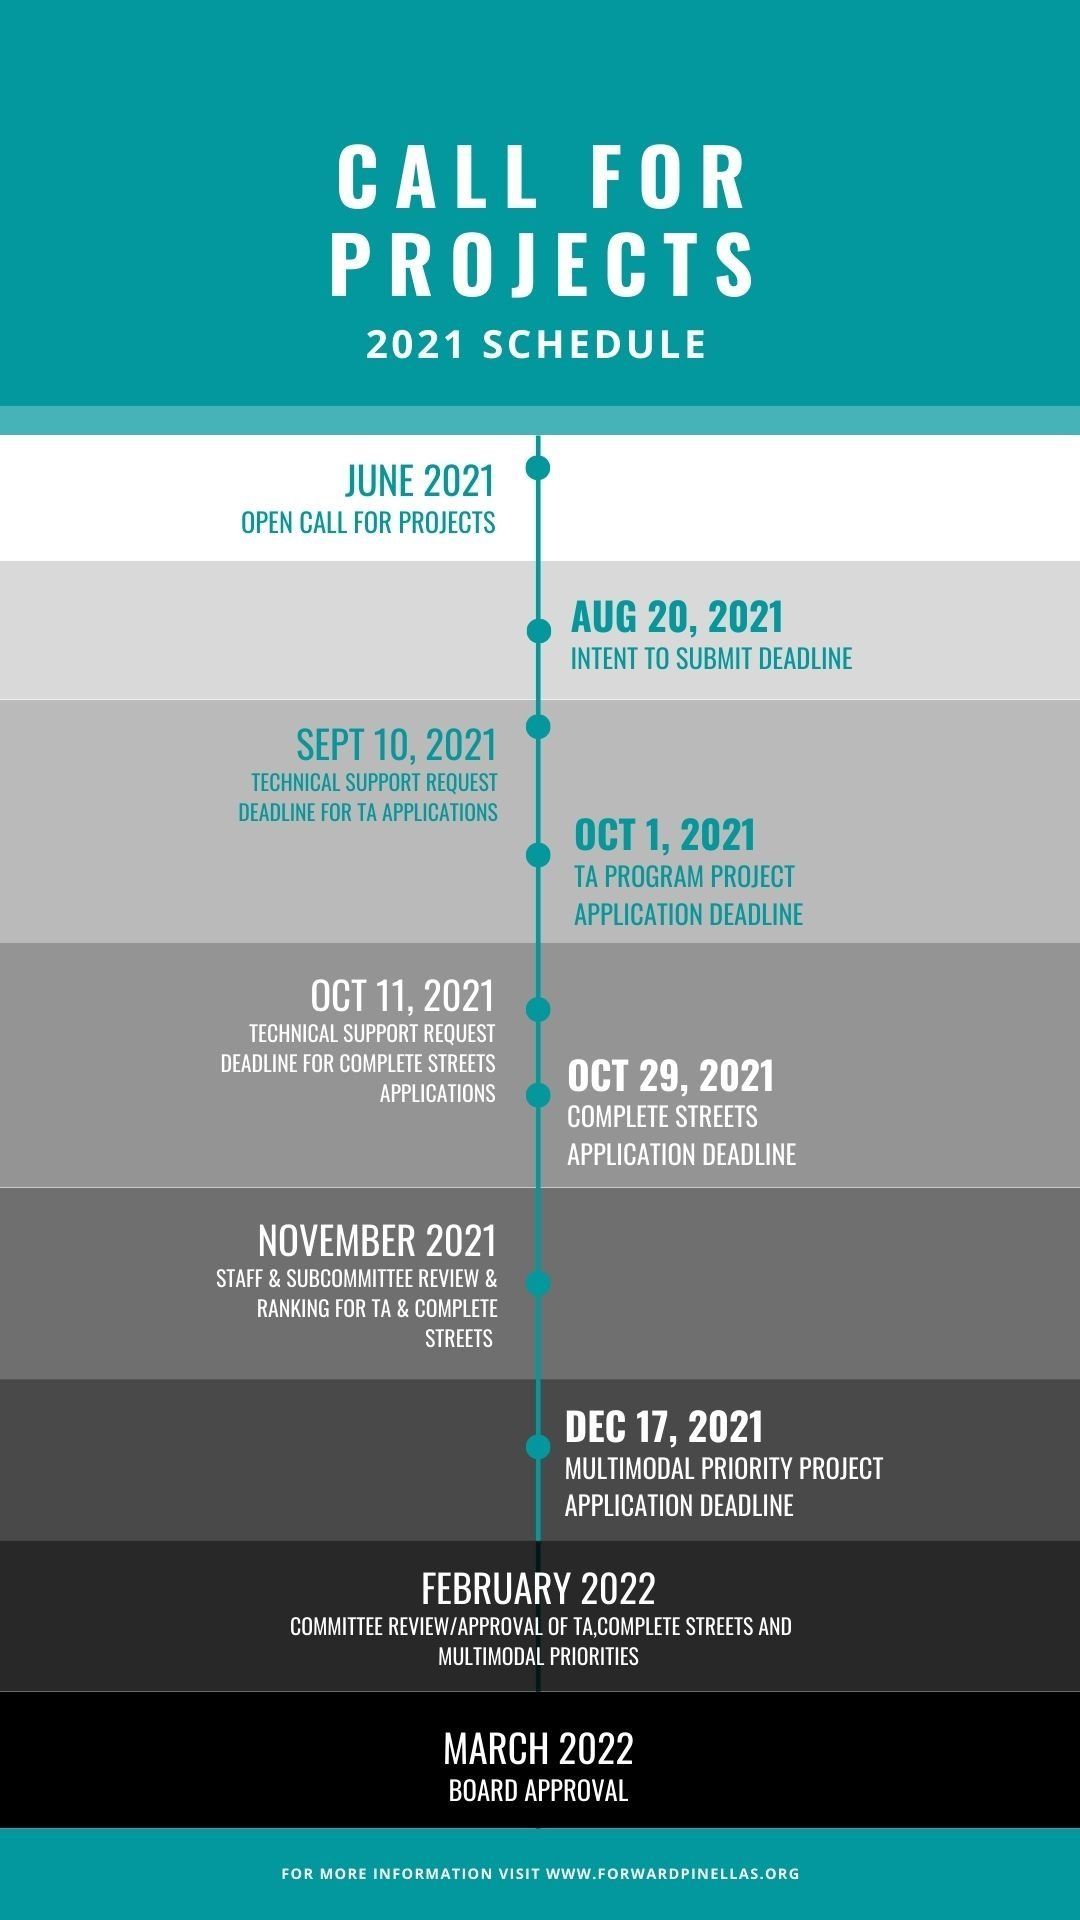 call for projects schedule 2021